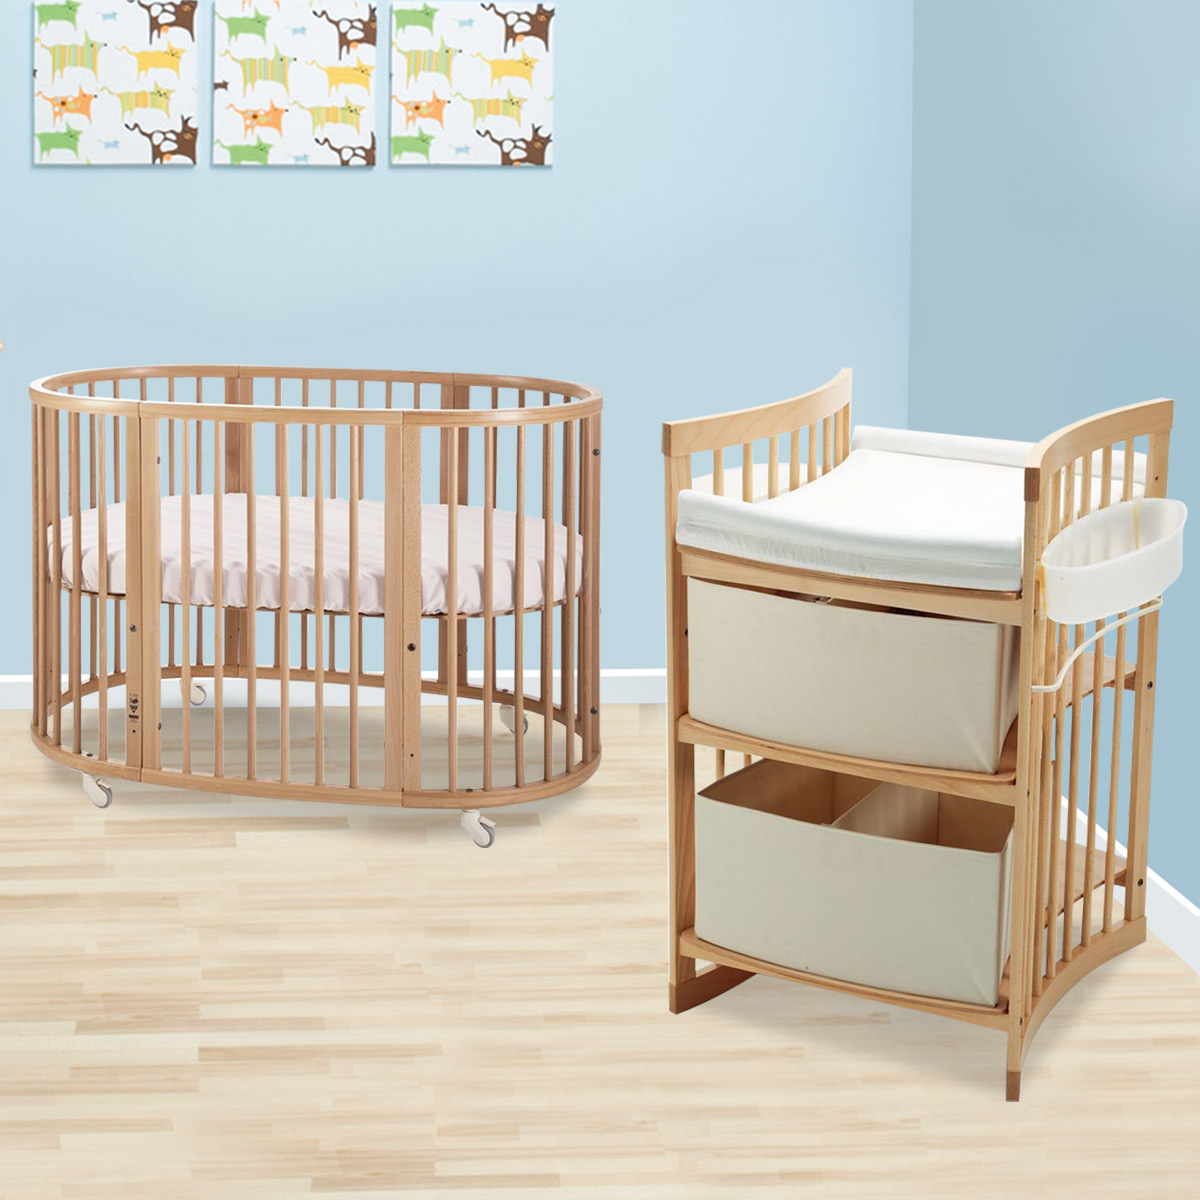 Stokke Sleepi 2 Piece Nursery Set Modern Oval Crib With Mattress And Care Changing Table In Natural Free Shipping